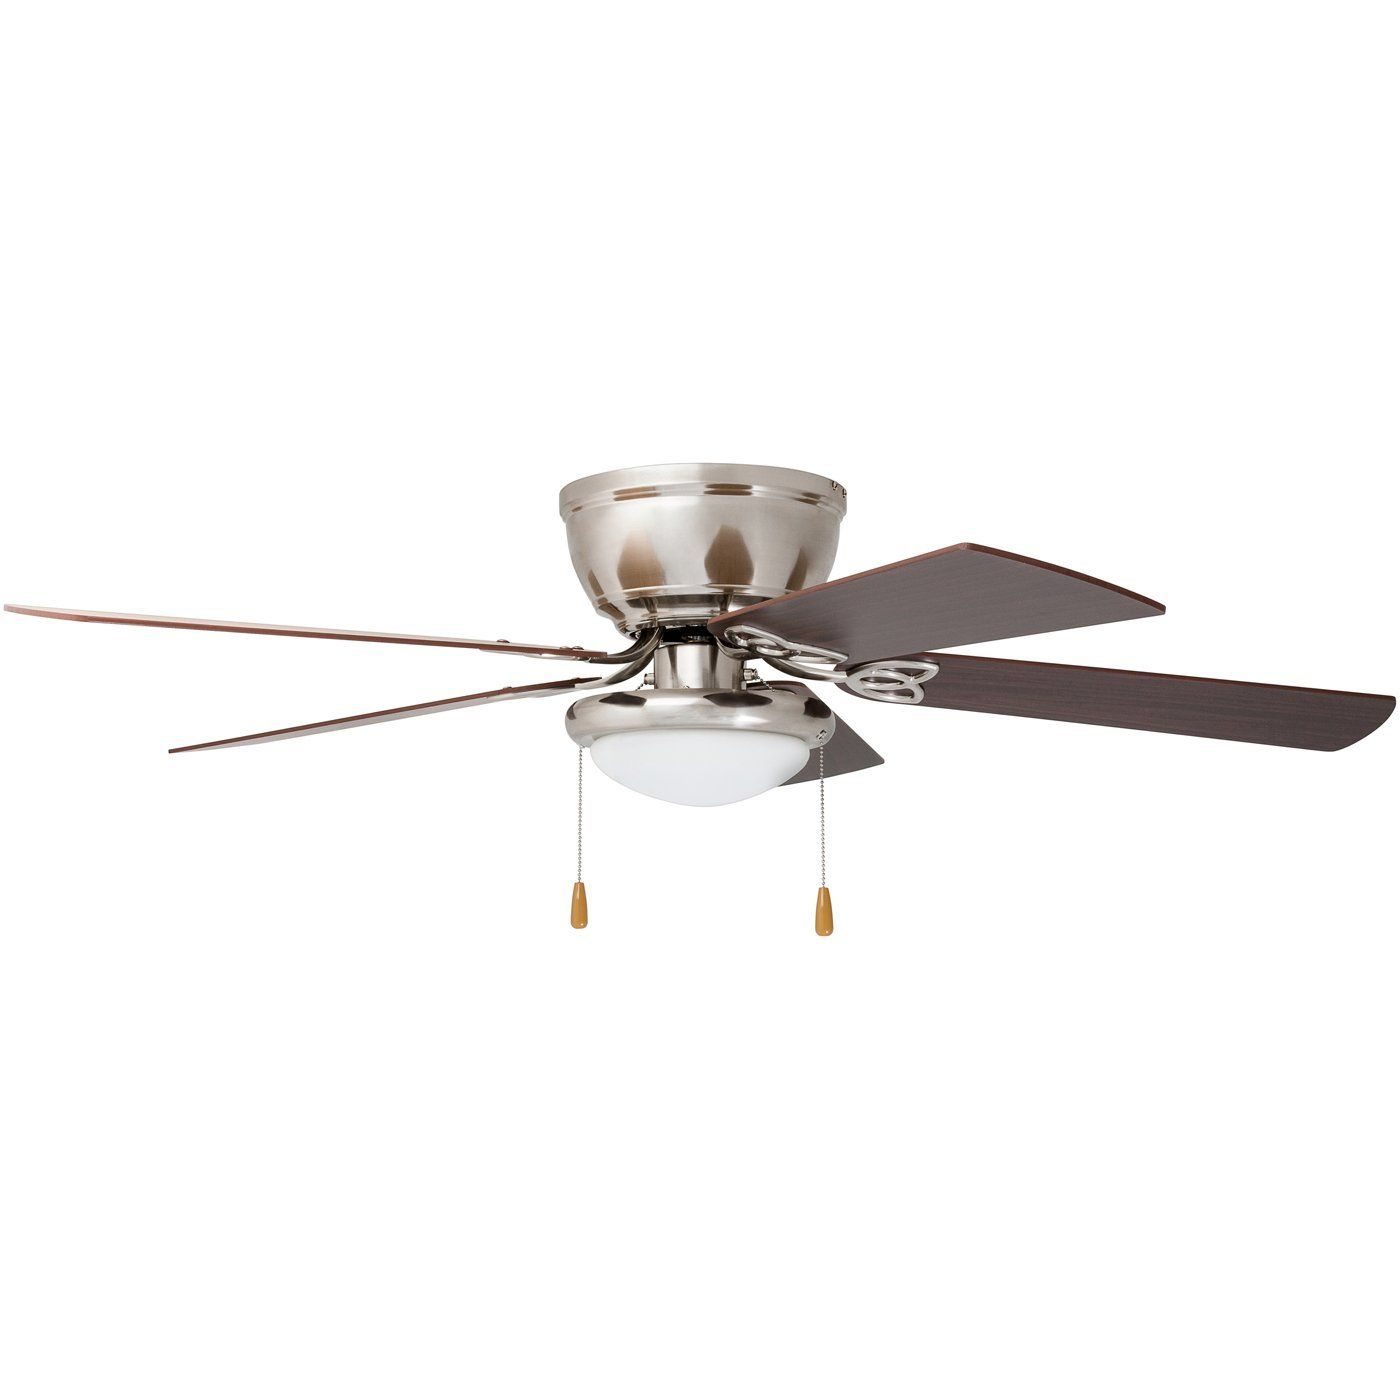 Hunter Bennett 52 In Led Low Profile Matte Black Indoor Ceiling Fan With Globe Light Kit And Handheld Remote Control 53393 The Home Depot Ceiling Fans Without Lights Black Ceiling Fan Ceiling Fan